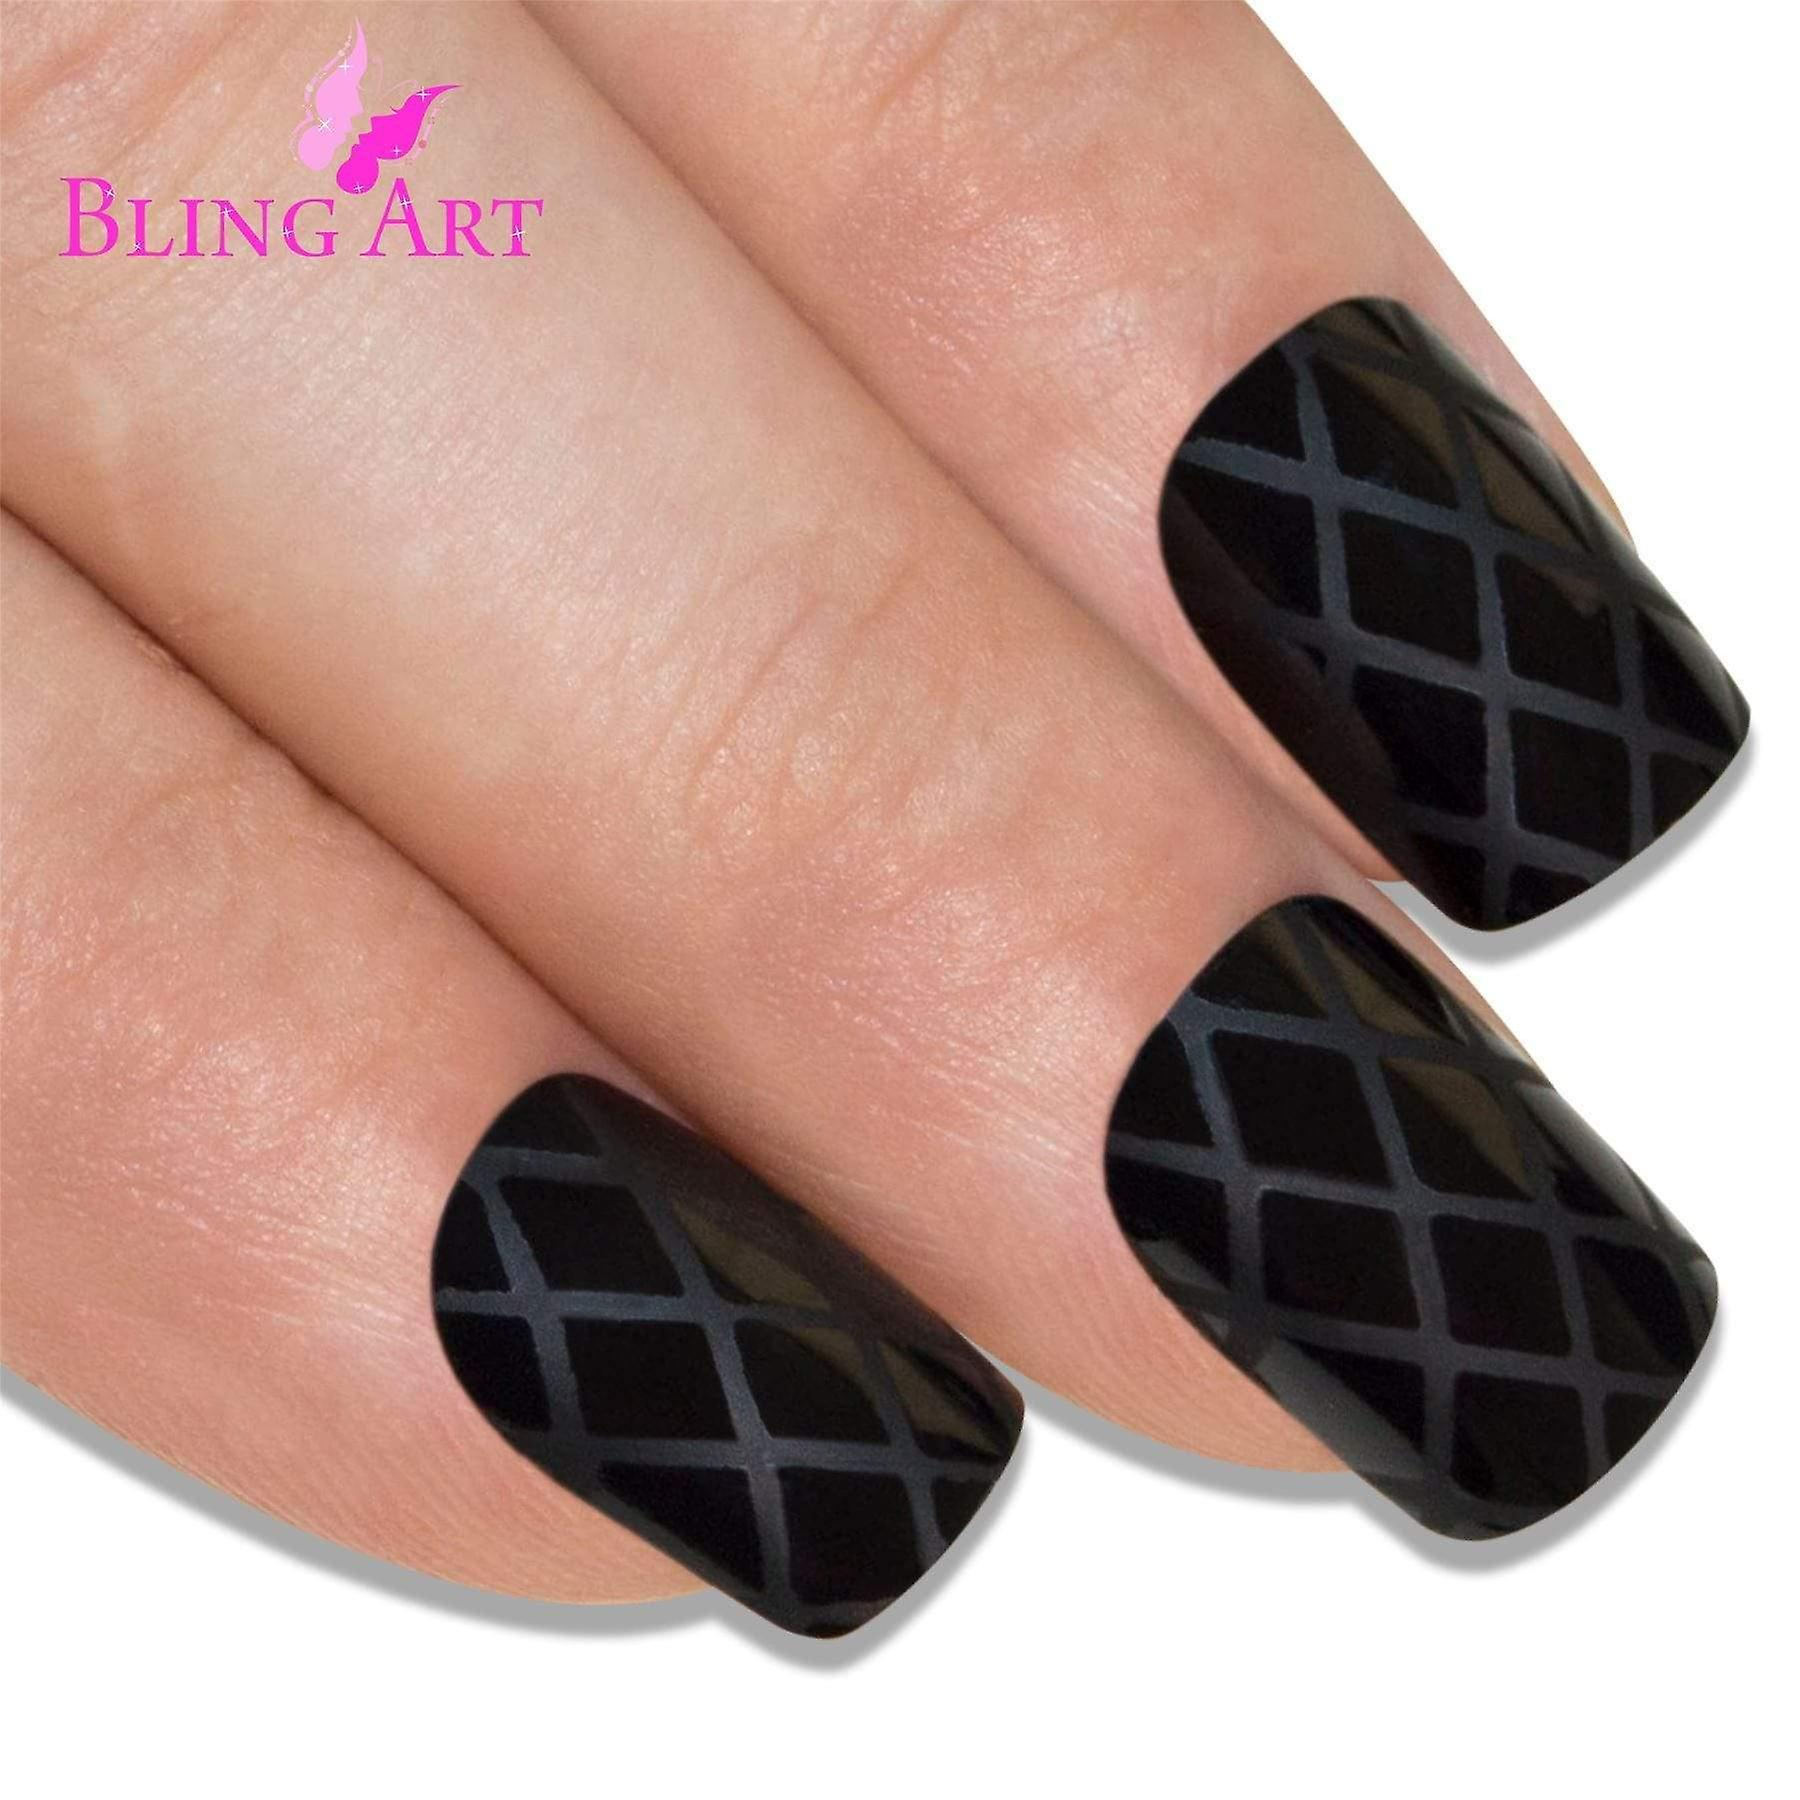 False nails by bling art matte black french manicure fake medium tips with glue